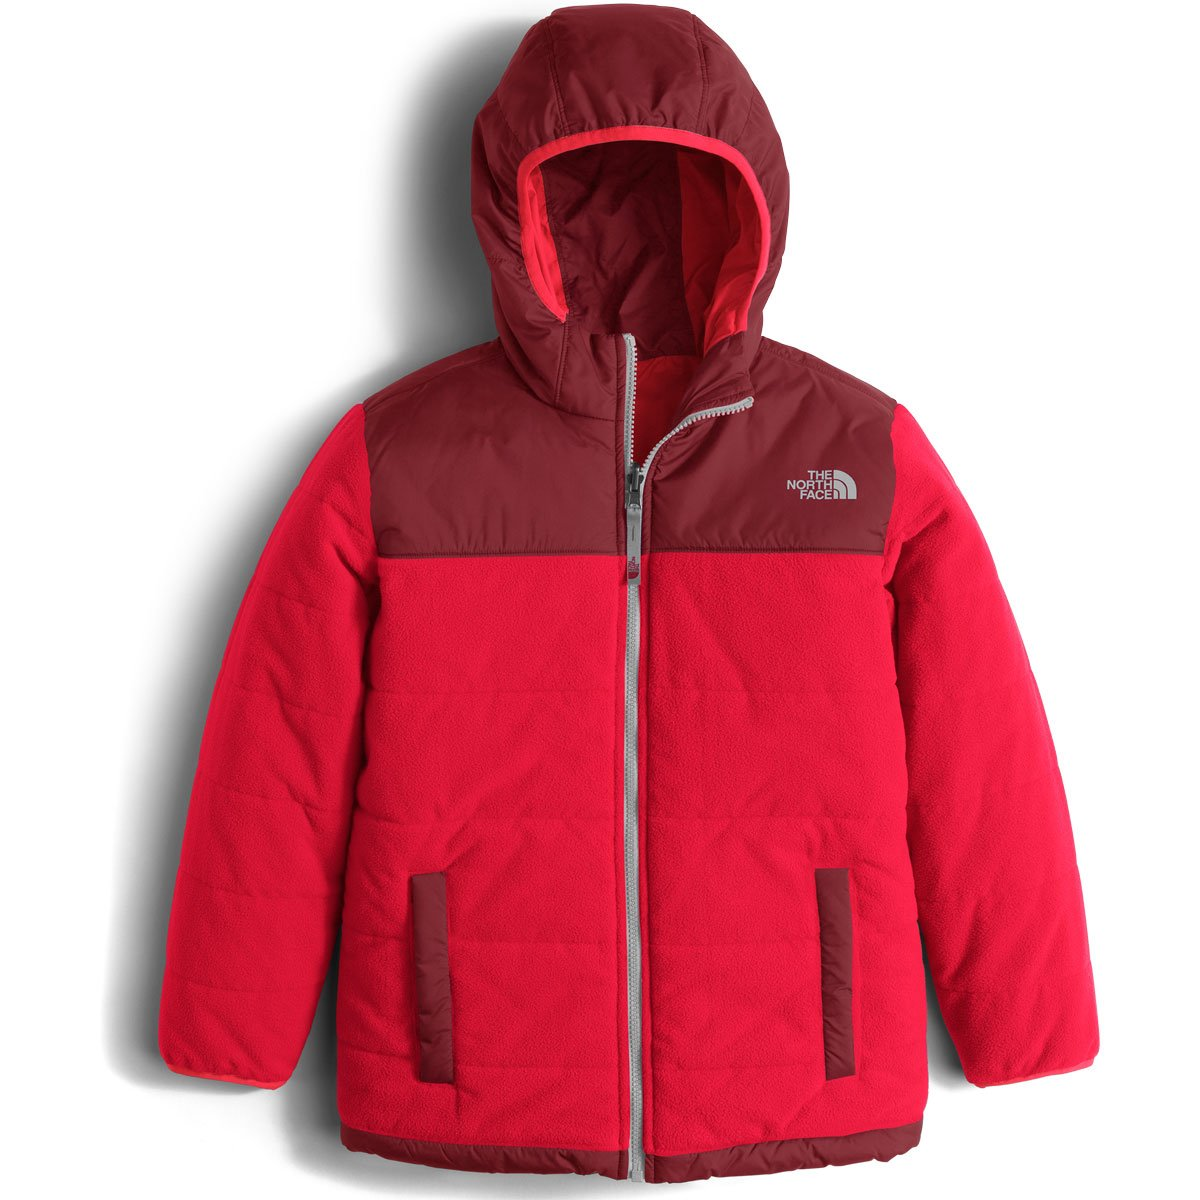 The North Face Reversible True Or False Jacket Boys TNF Red Small by The North Face